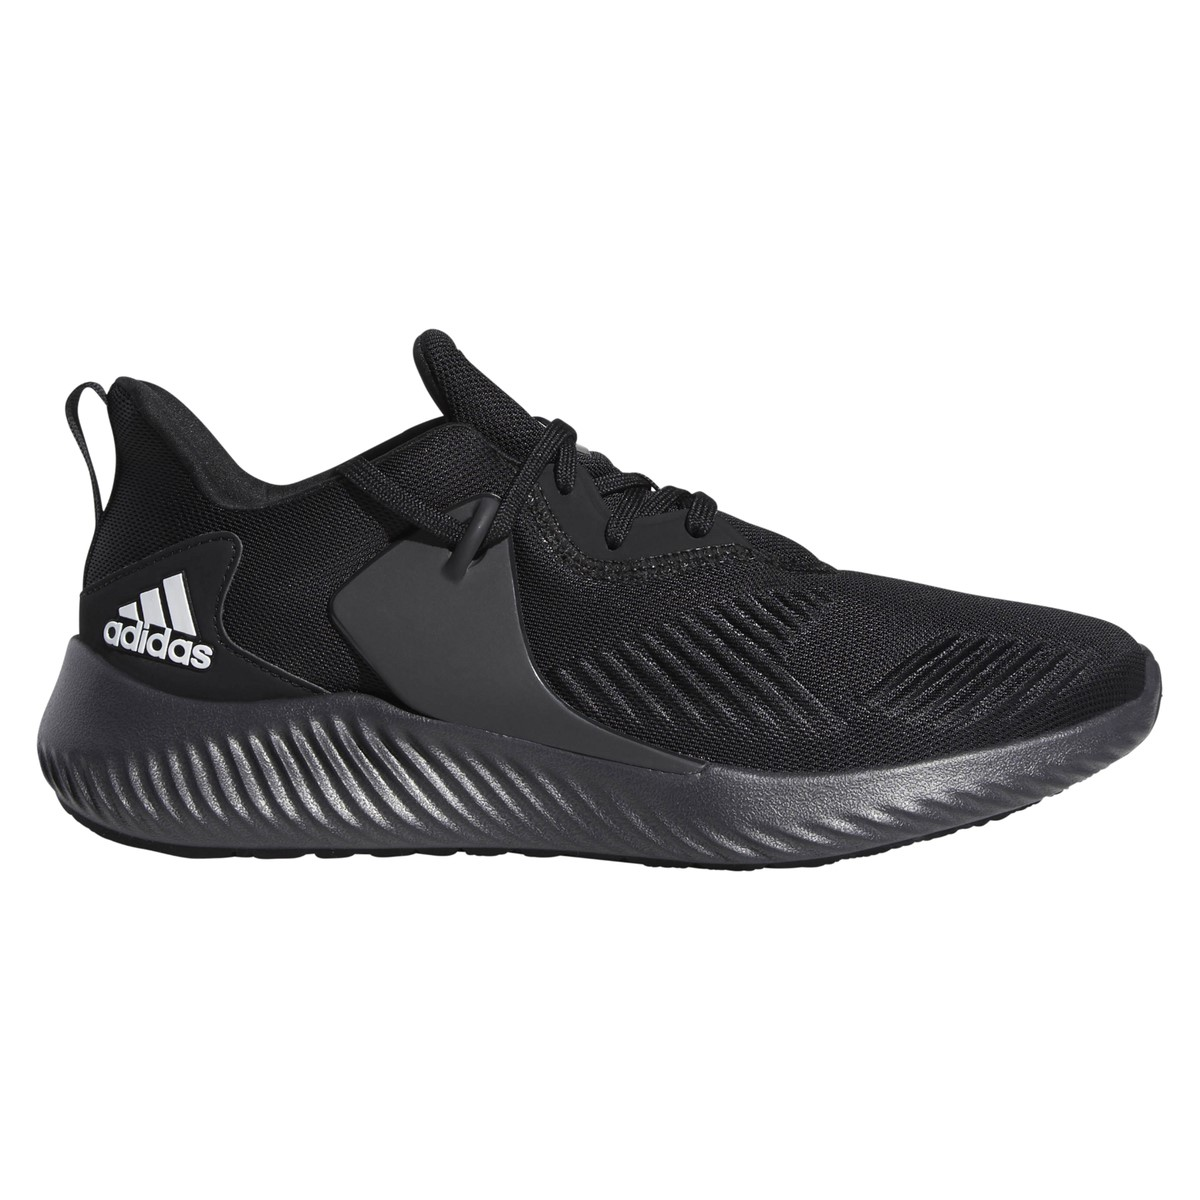 8115f0e9cfc4fd Adidas AlphaBounce RC 2 - Mens Running Shoes - Core Black White Carbon